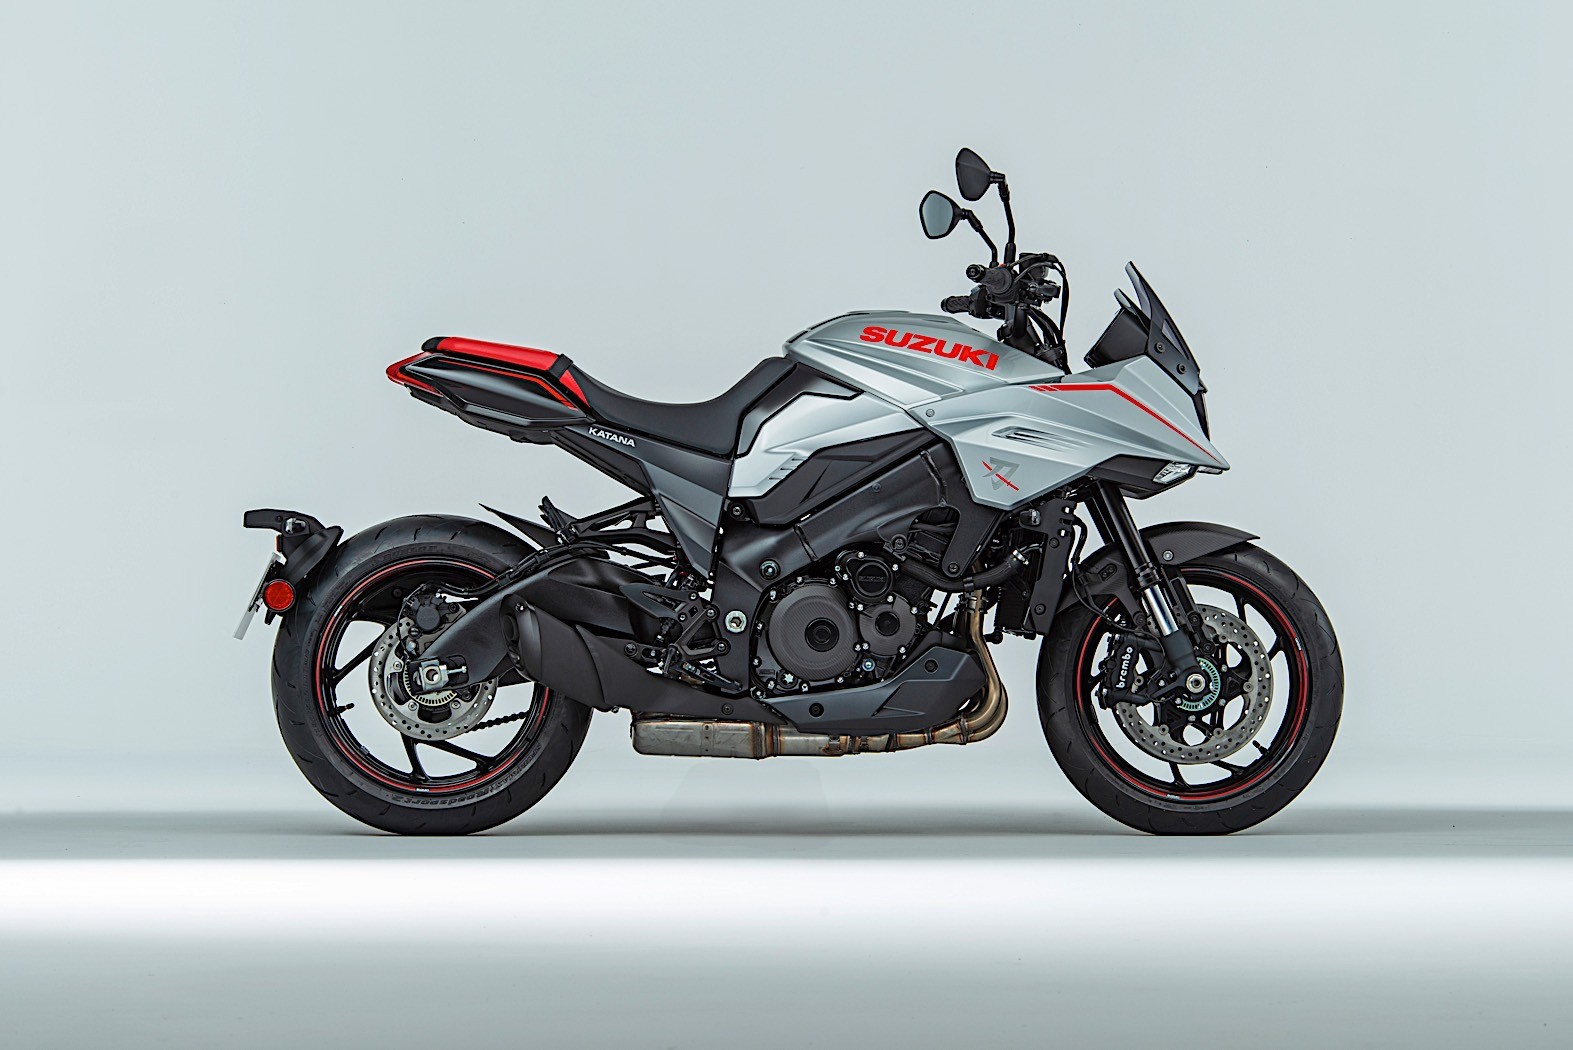 2020-suzuki-katana-available-with-samurai-pack-in-the-uk-priced-from-gbp-11399-9